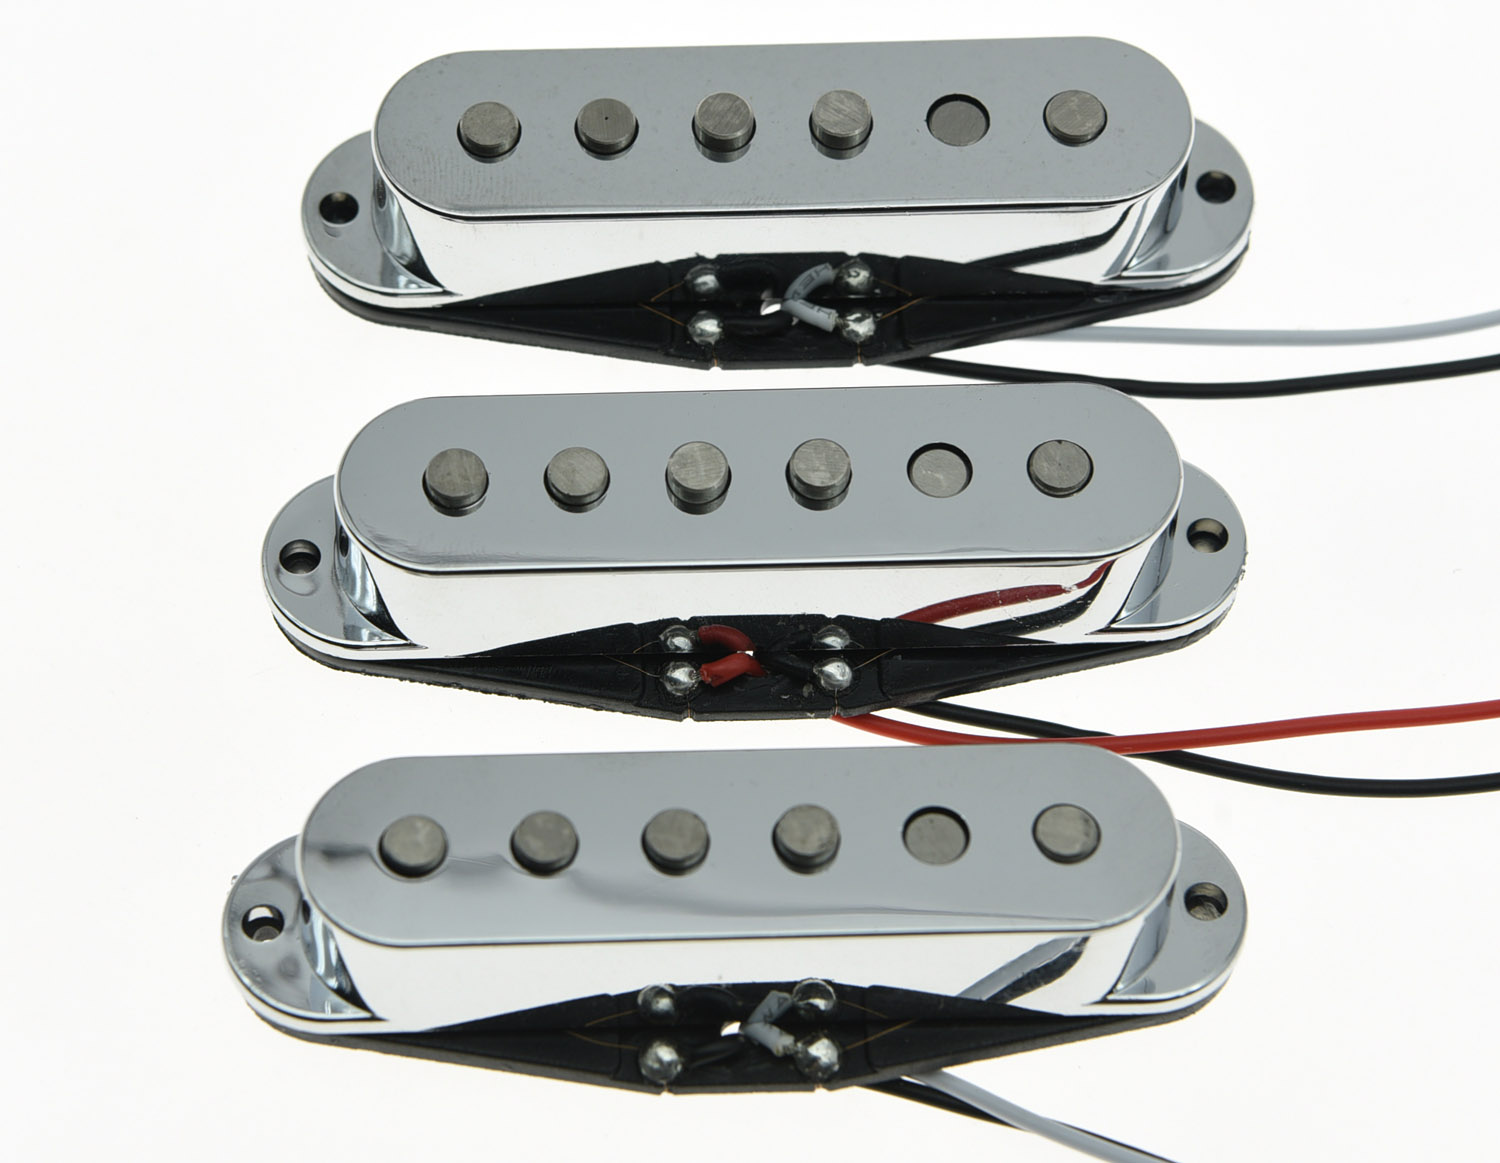 KAISH 3x Chrome Alnico 5 Single Coil Pickups ST Strat SSS Pickup Set single coil pickup cover 1 volume 2 tone knobs switch tip for strat guitar replacement ivory 10 set